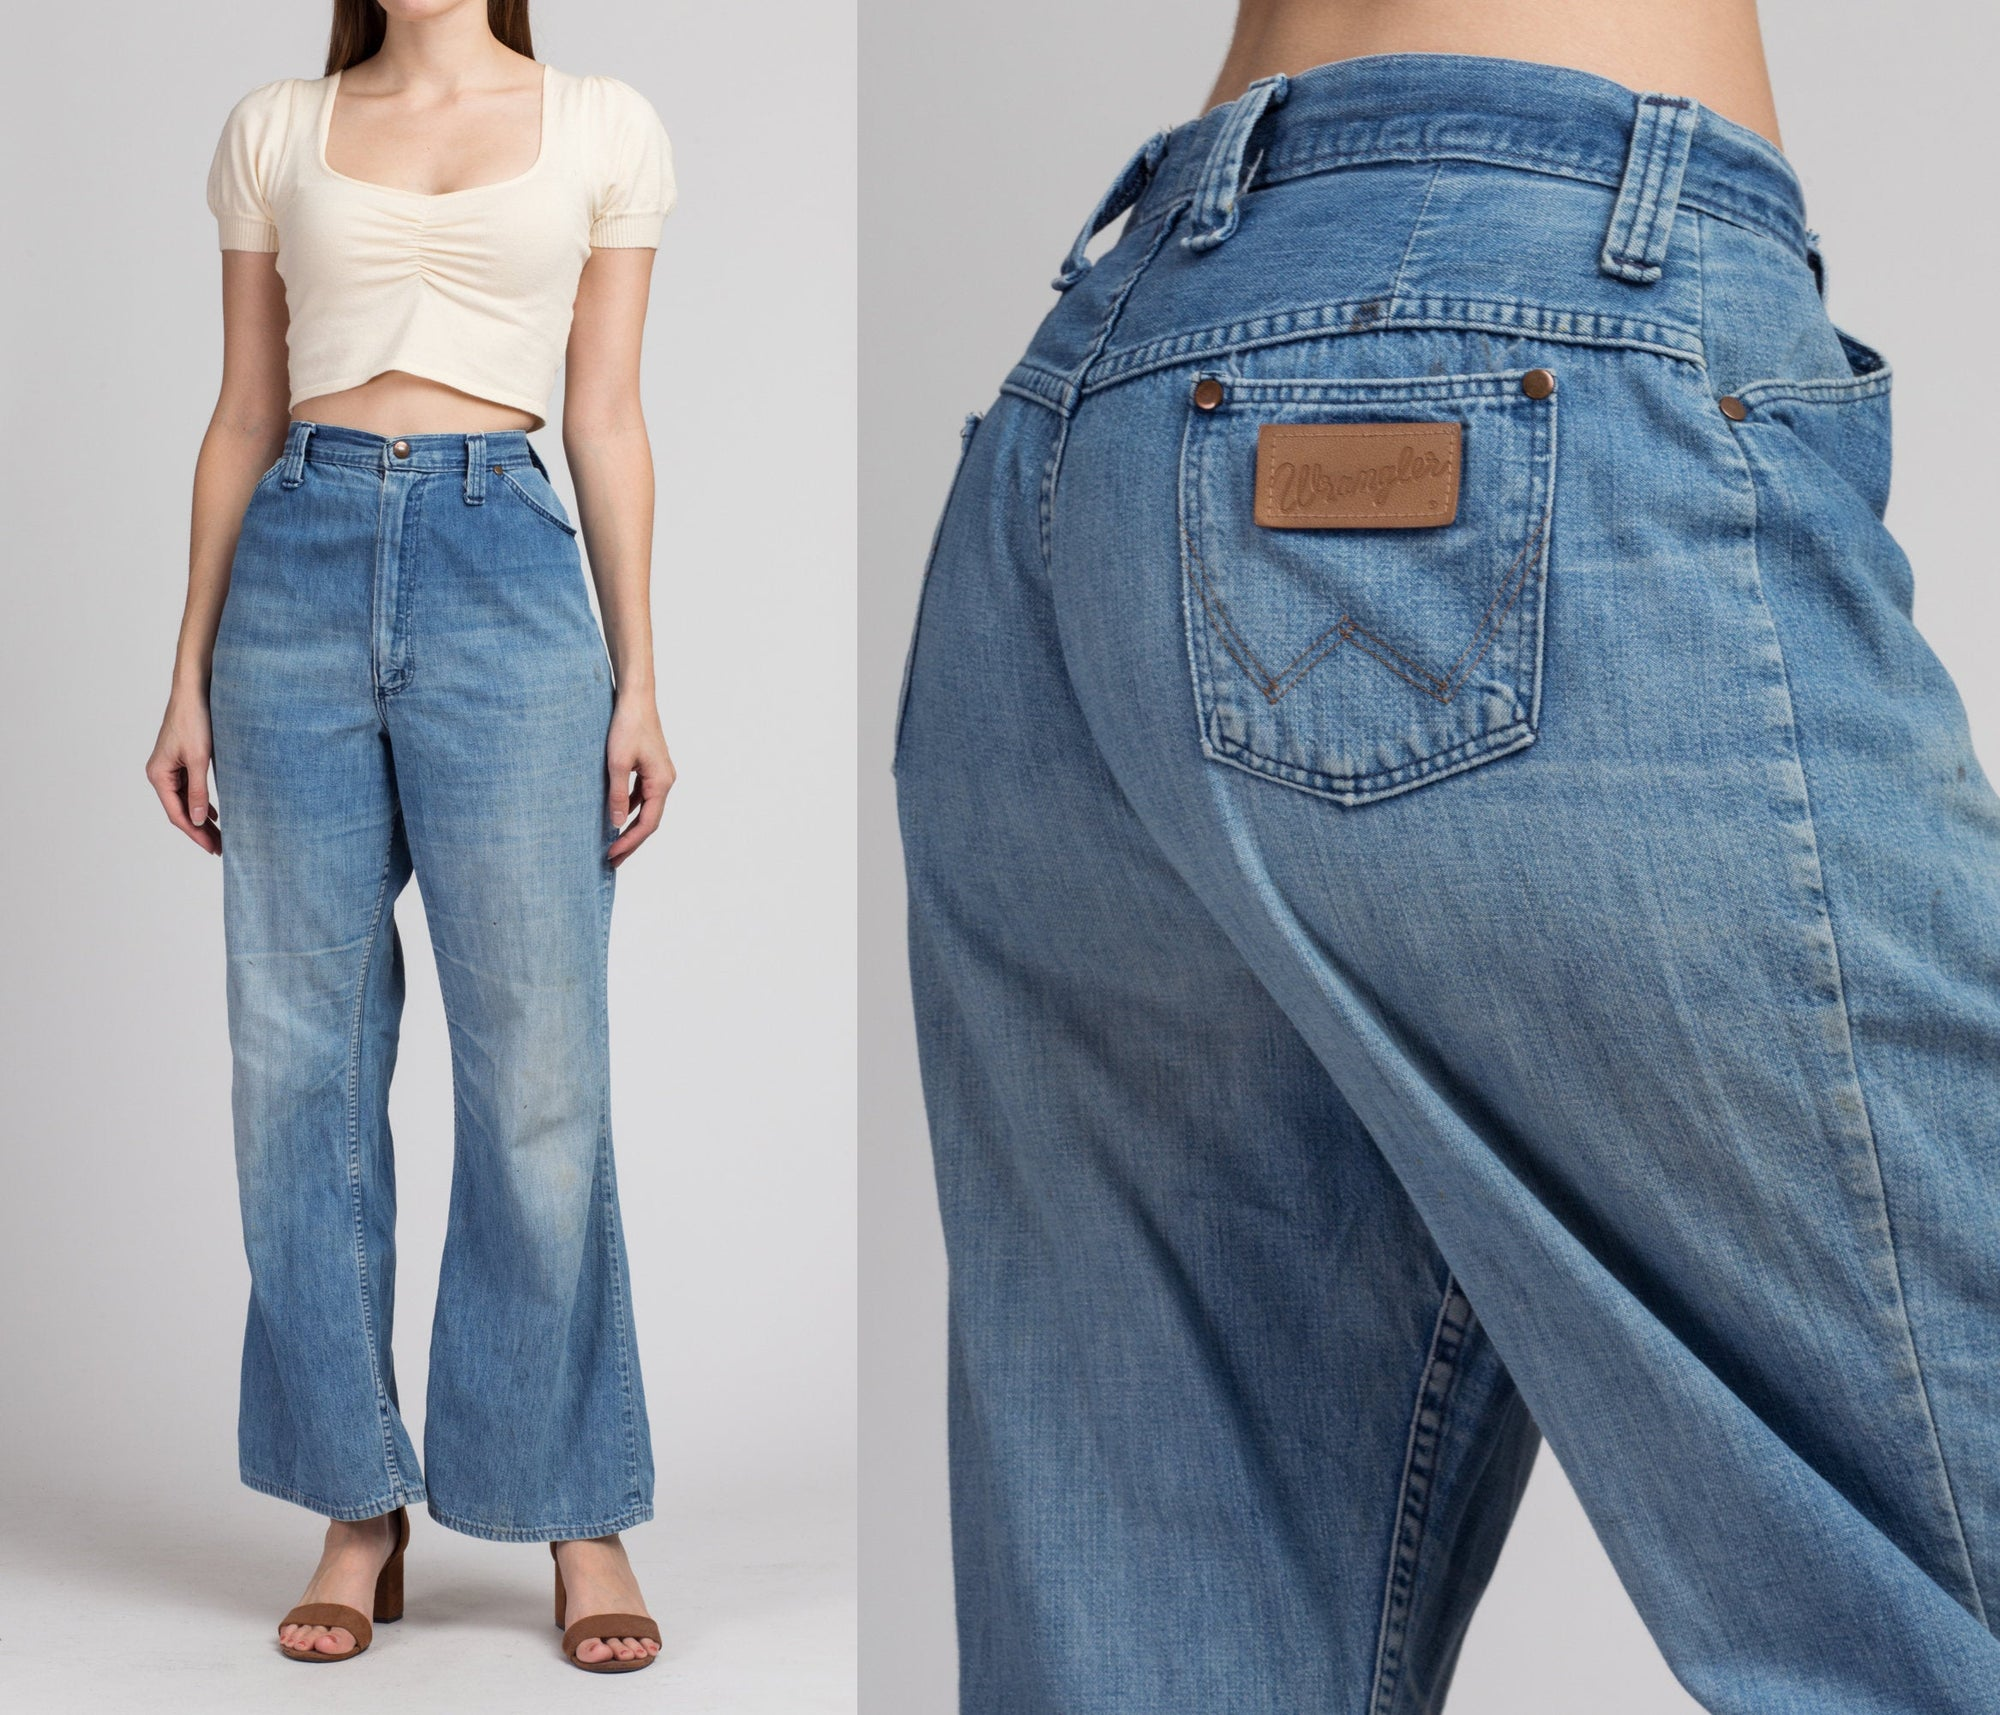 70s Flared High Waist Wrangler Jeans - Medium to Large